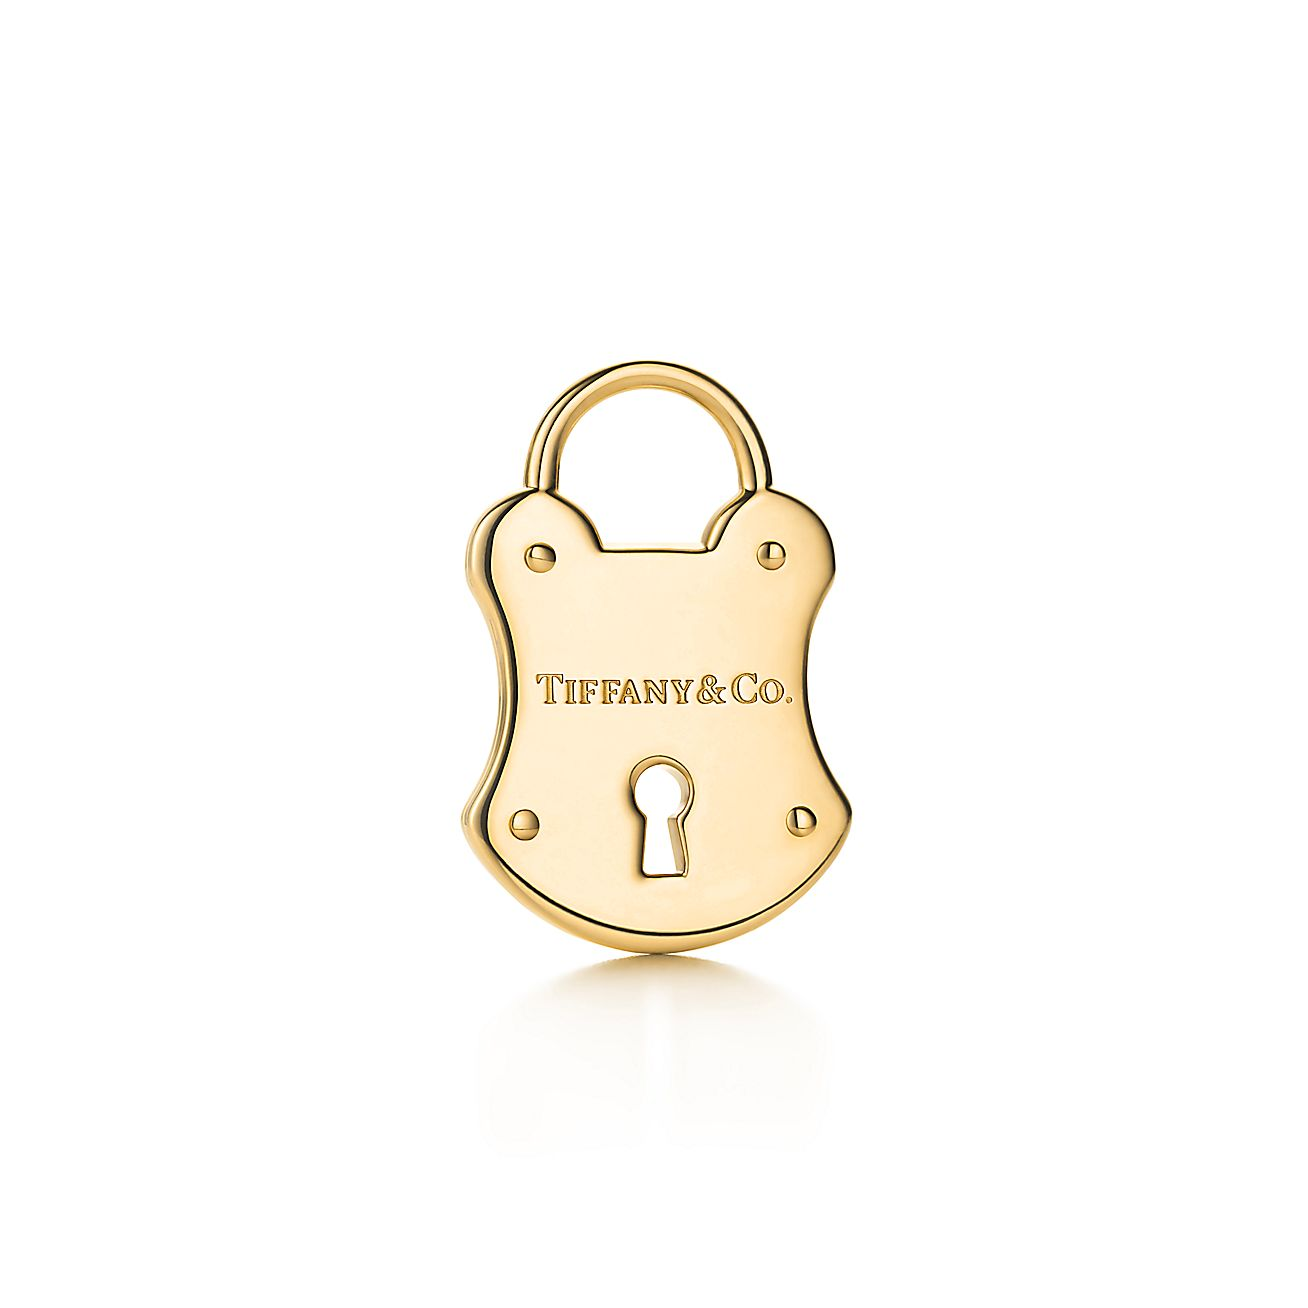 Tiffany Locks:Emblem Lock